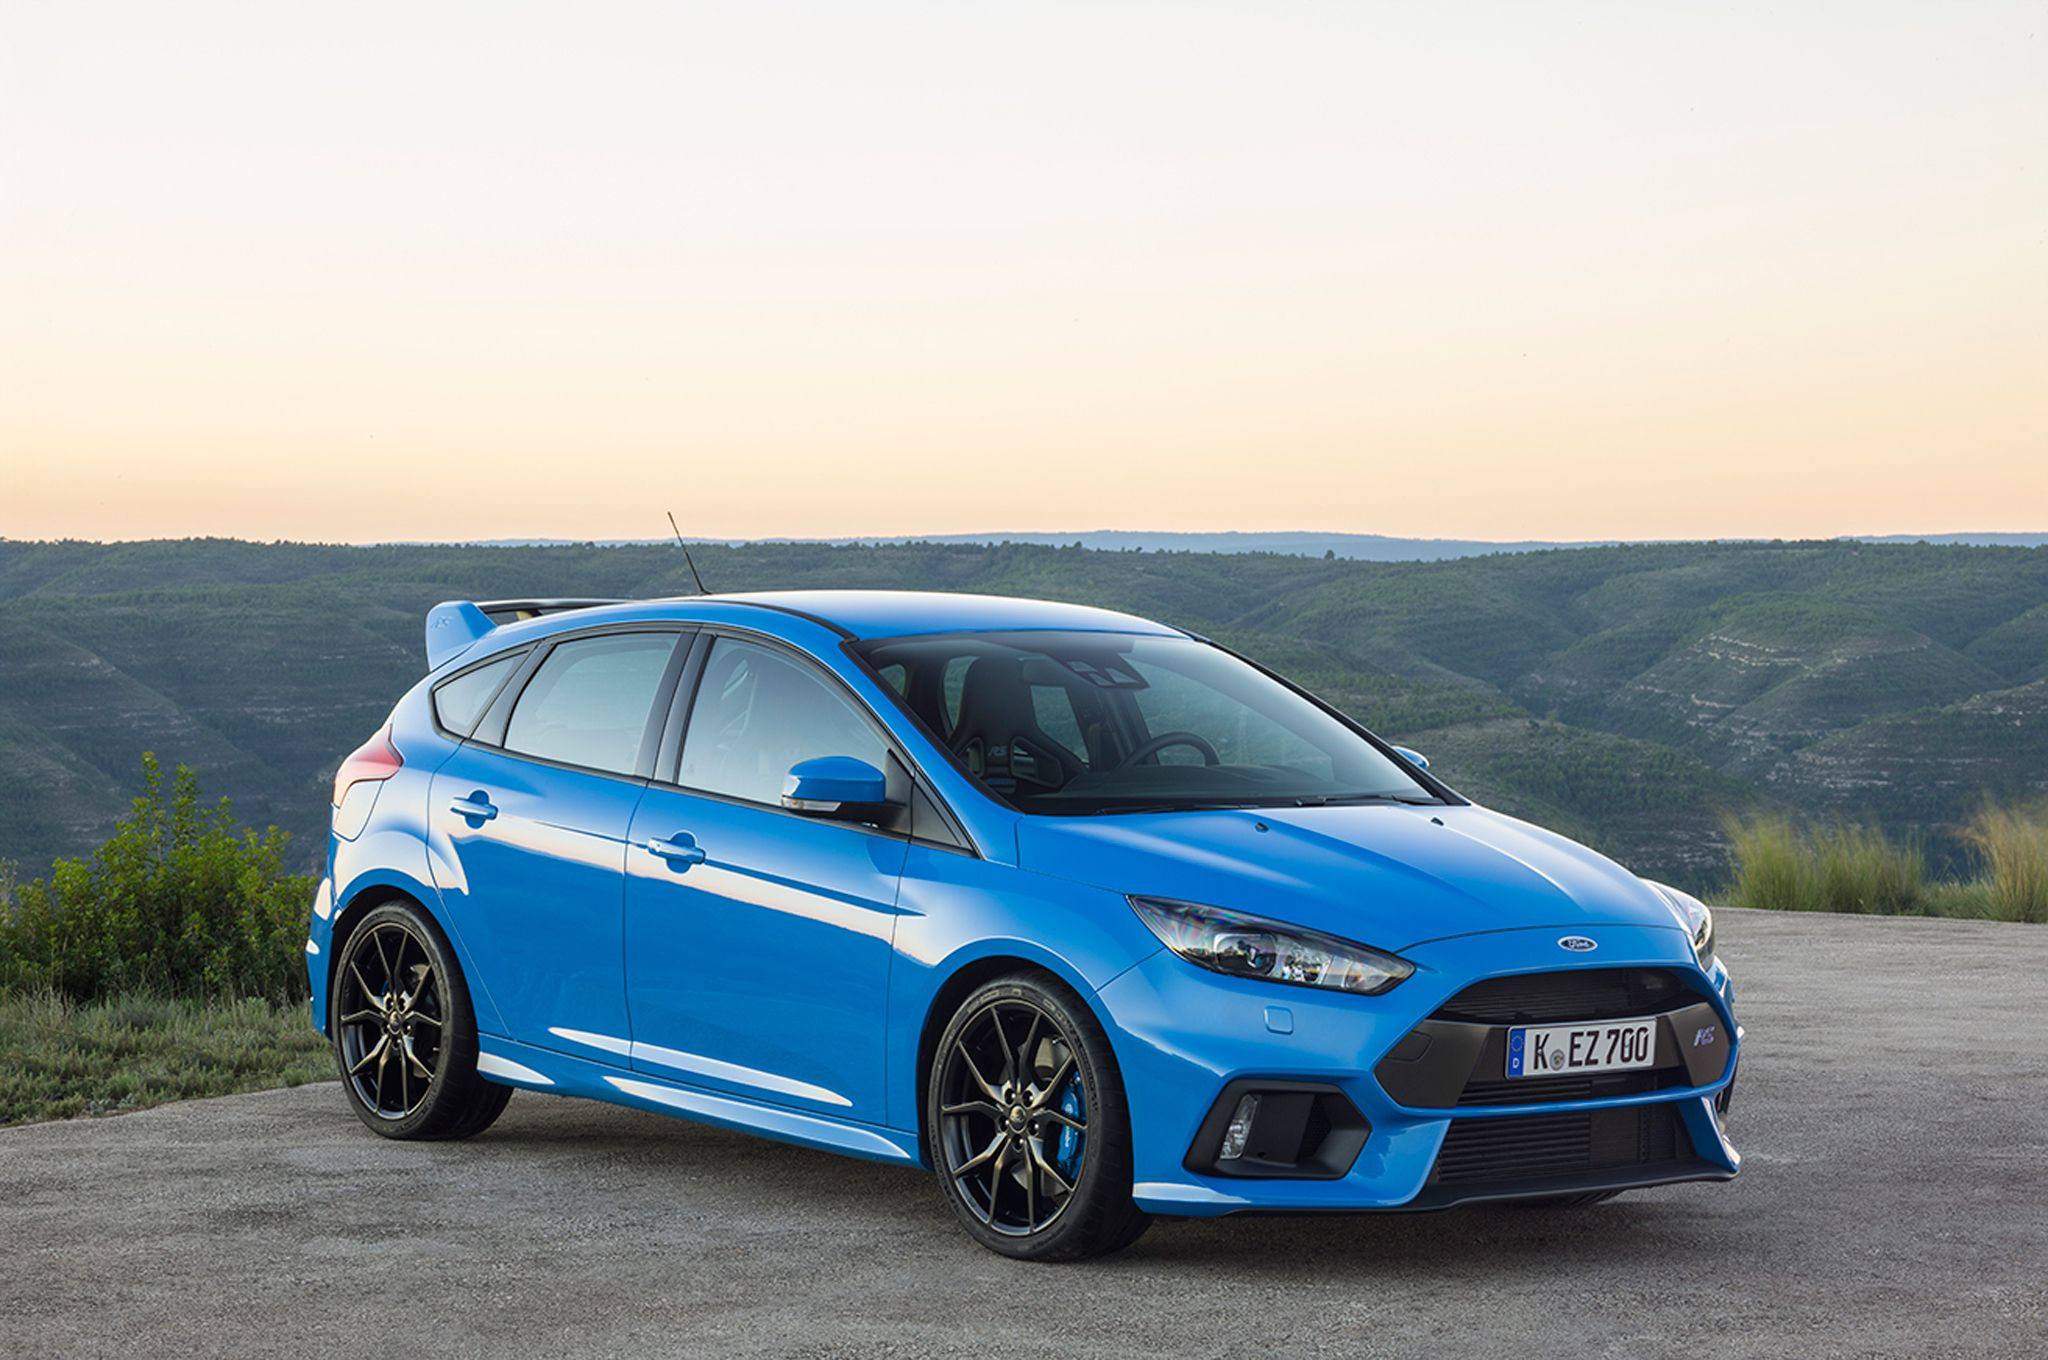 2016 Ford Focus Rs Confused About What To Buy Call 1 800 Car Show For A Product Specialists Who Will Help You For Free 3 Ford Focus Rs Ford Focus Focus Rs